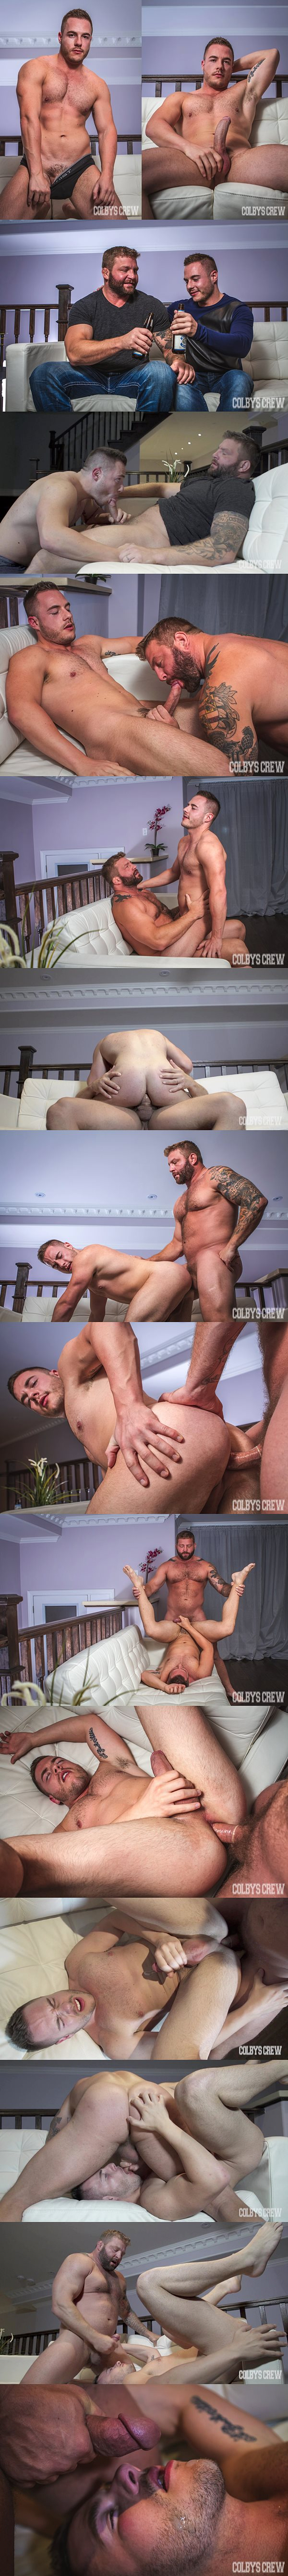 Colby Jansen fucks muscle hunk Tobias James in The Ex-Girlfriend at Colbyscrew 02